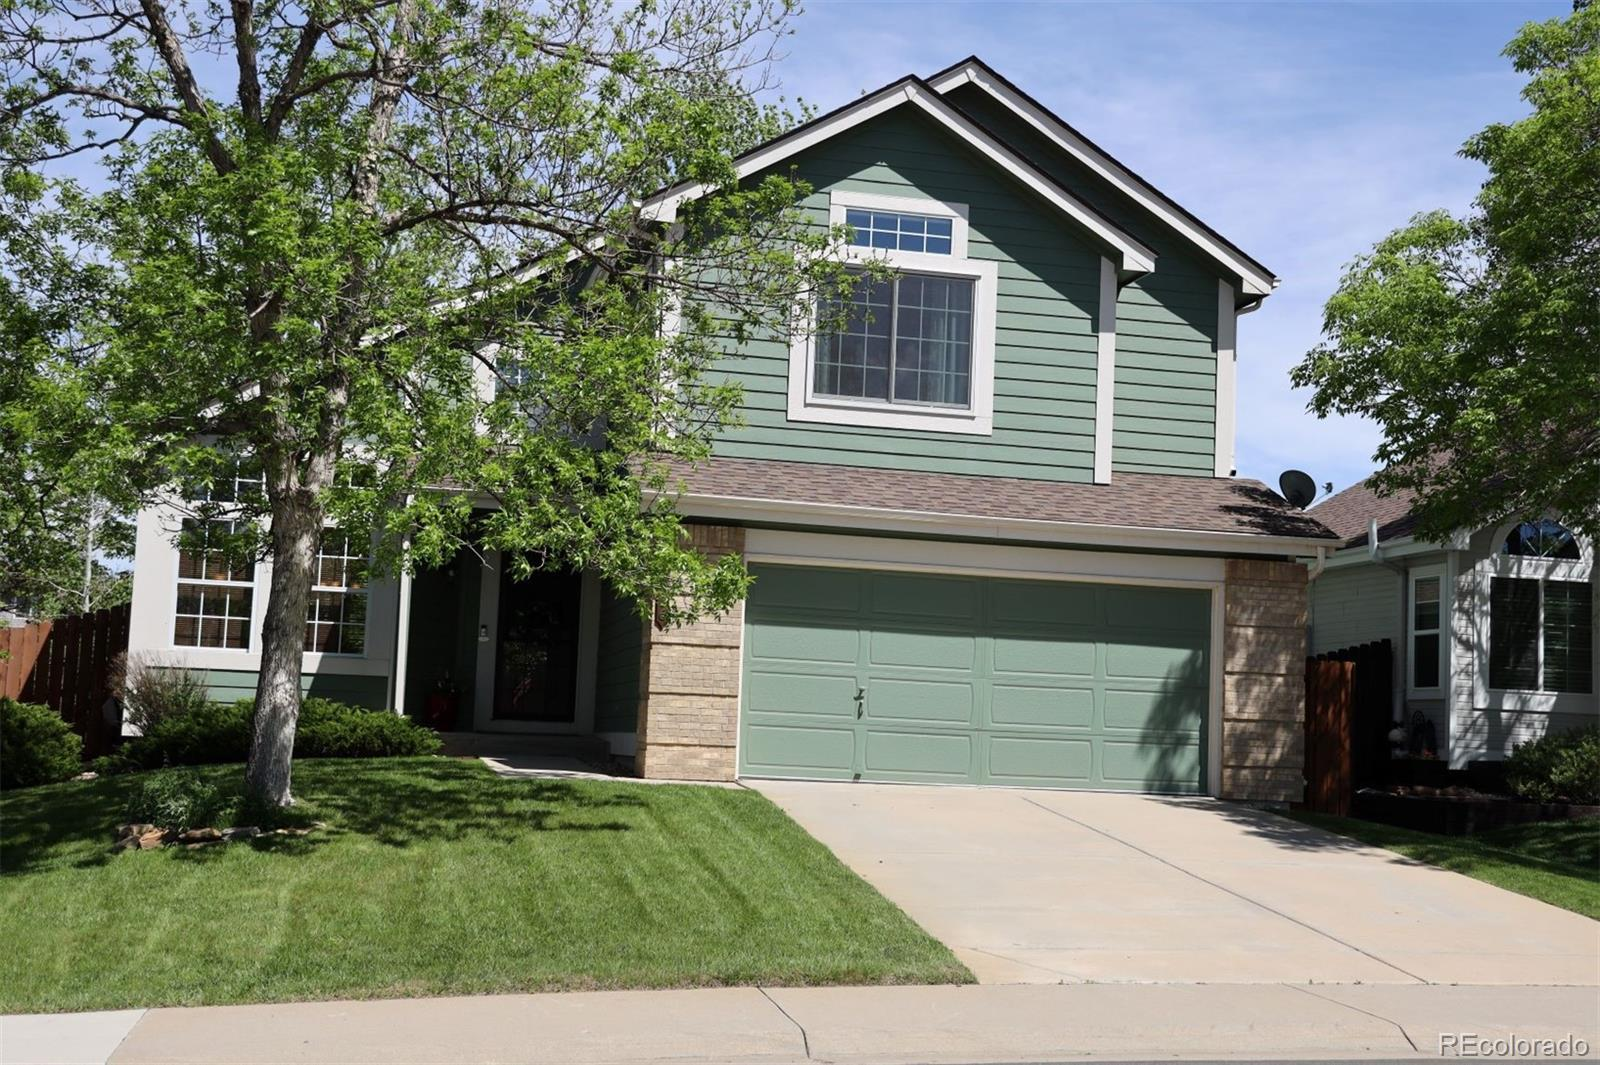 9766 Teller Court, Westminster, CO 80021 - Westminster, CO real estate listing